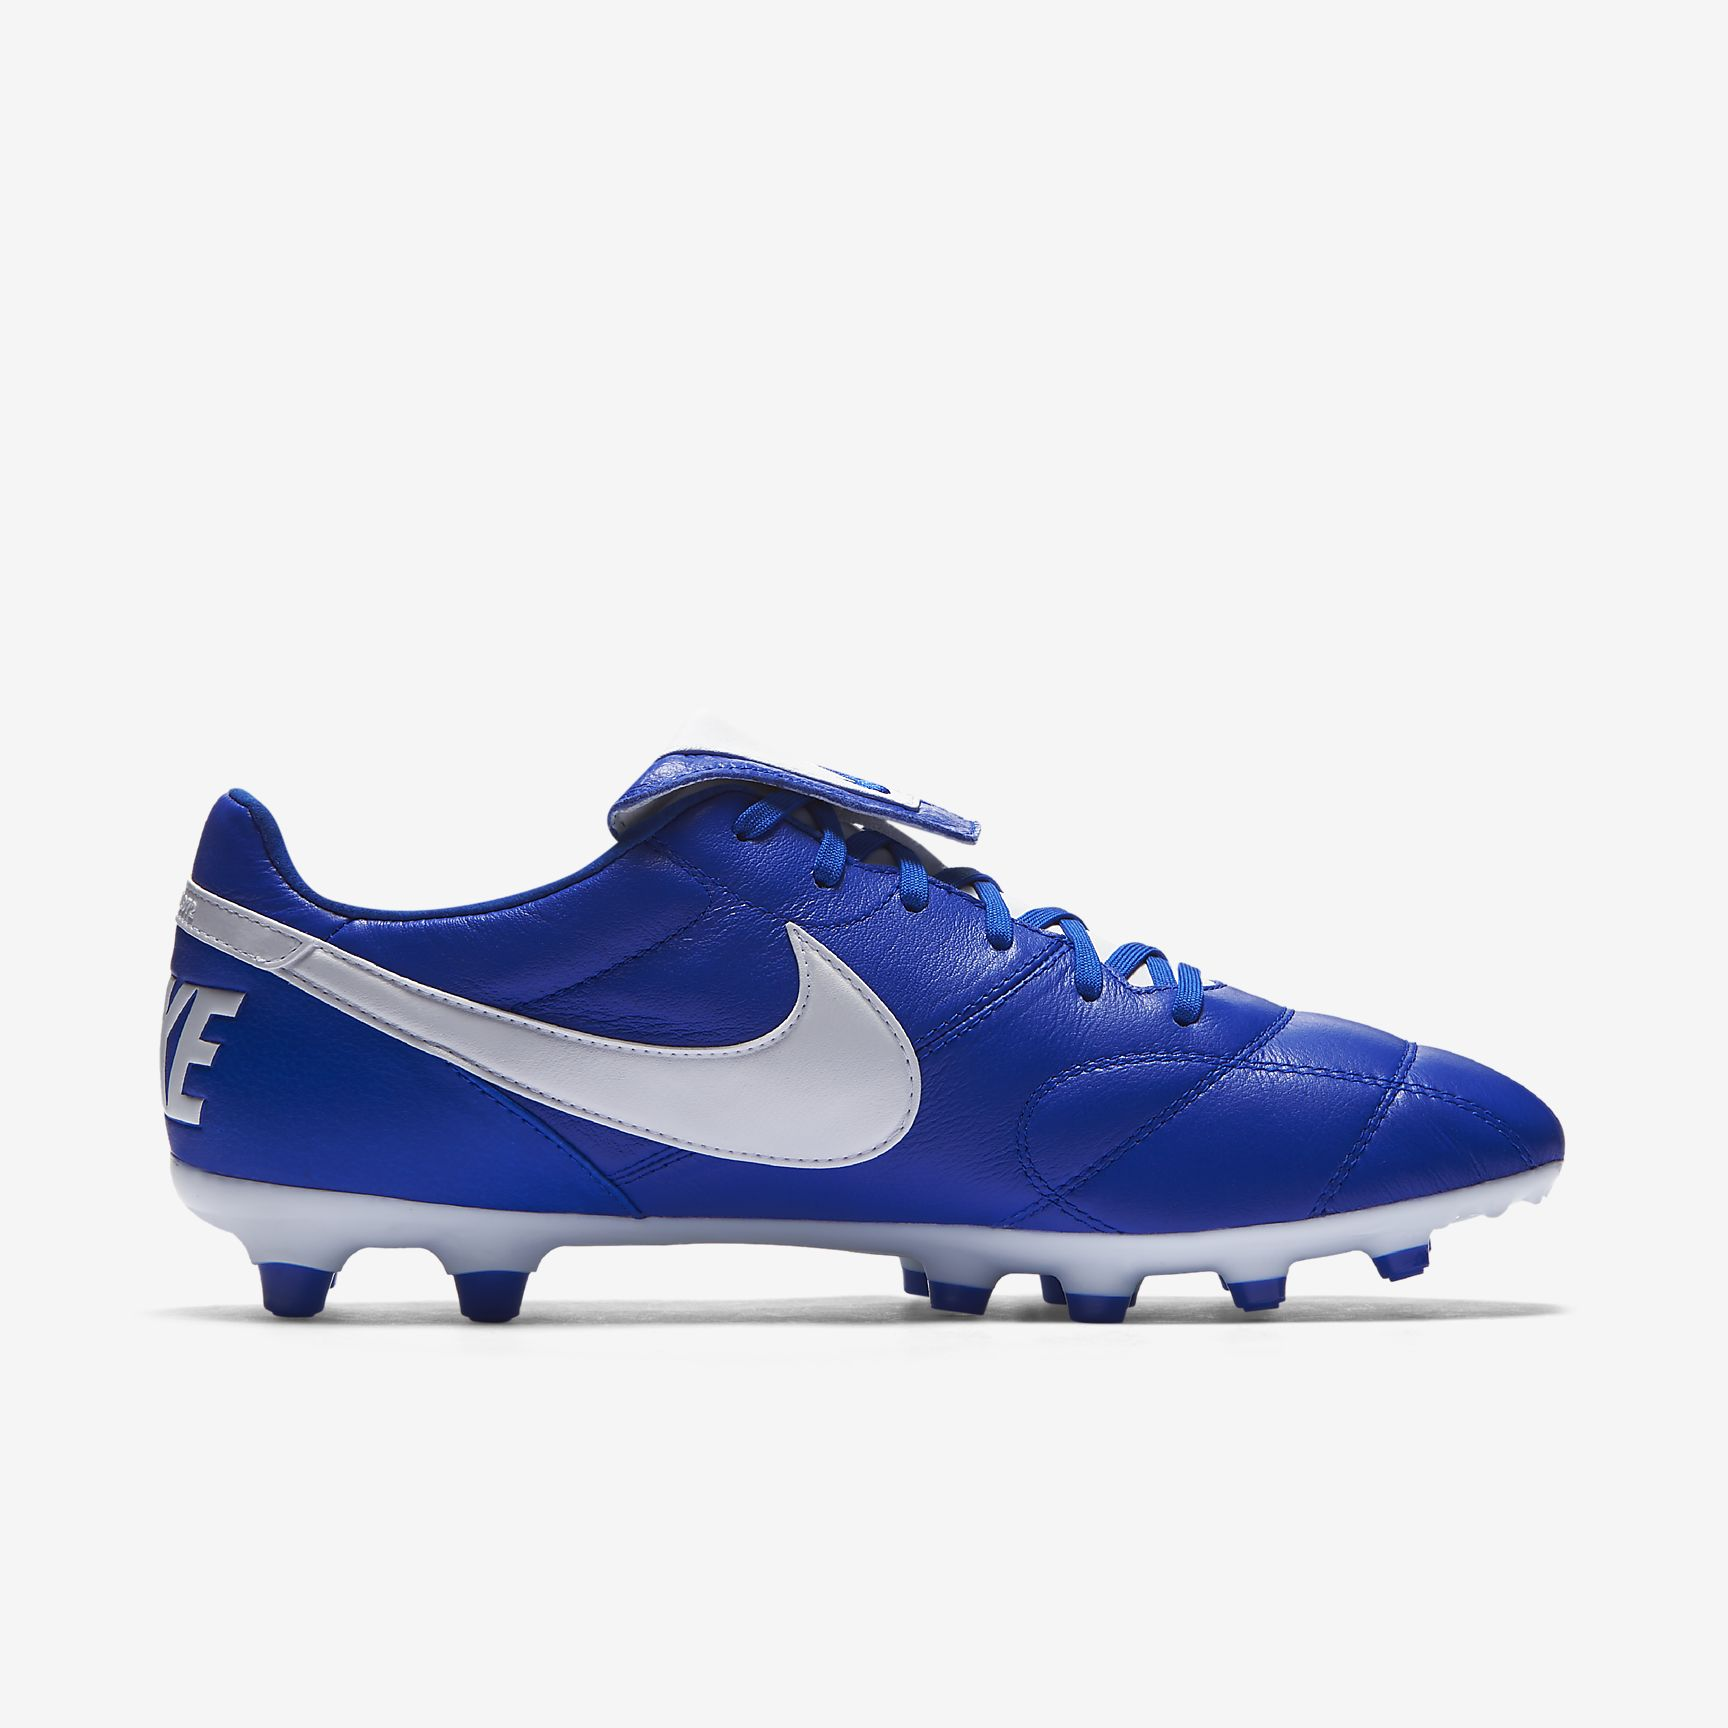 premier-ii-firm-ground-soccer-cleat-LBTgEwNO2.jpg